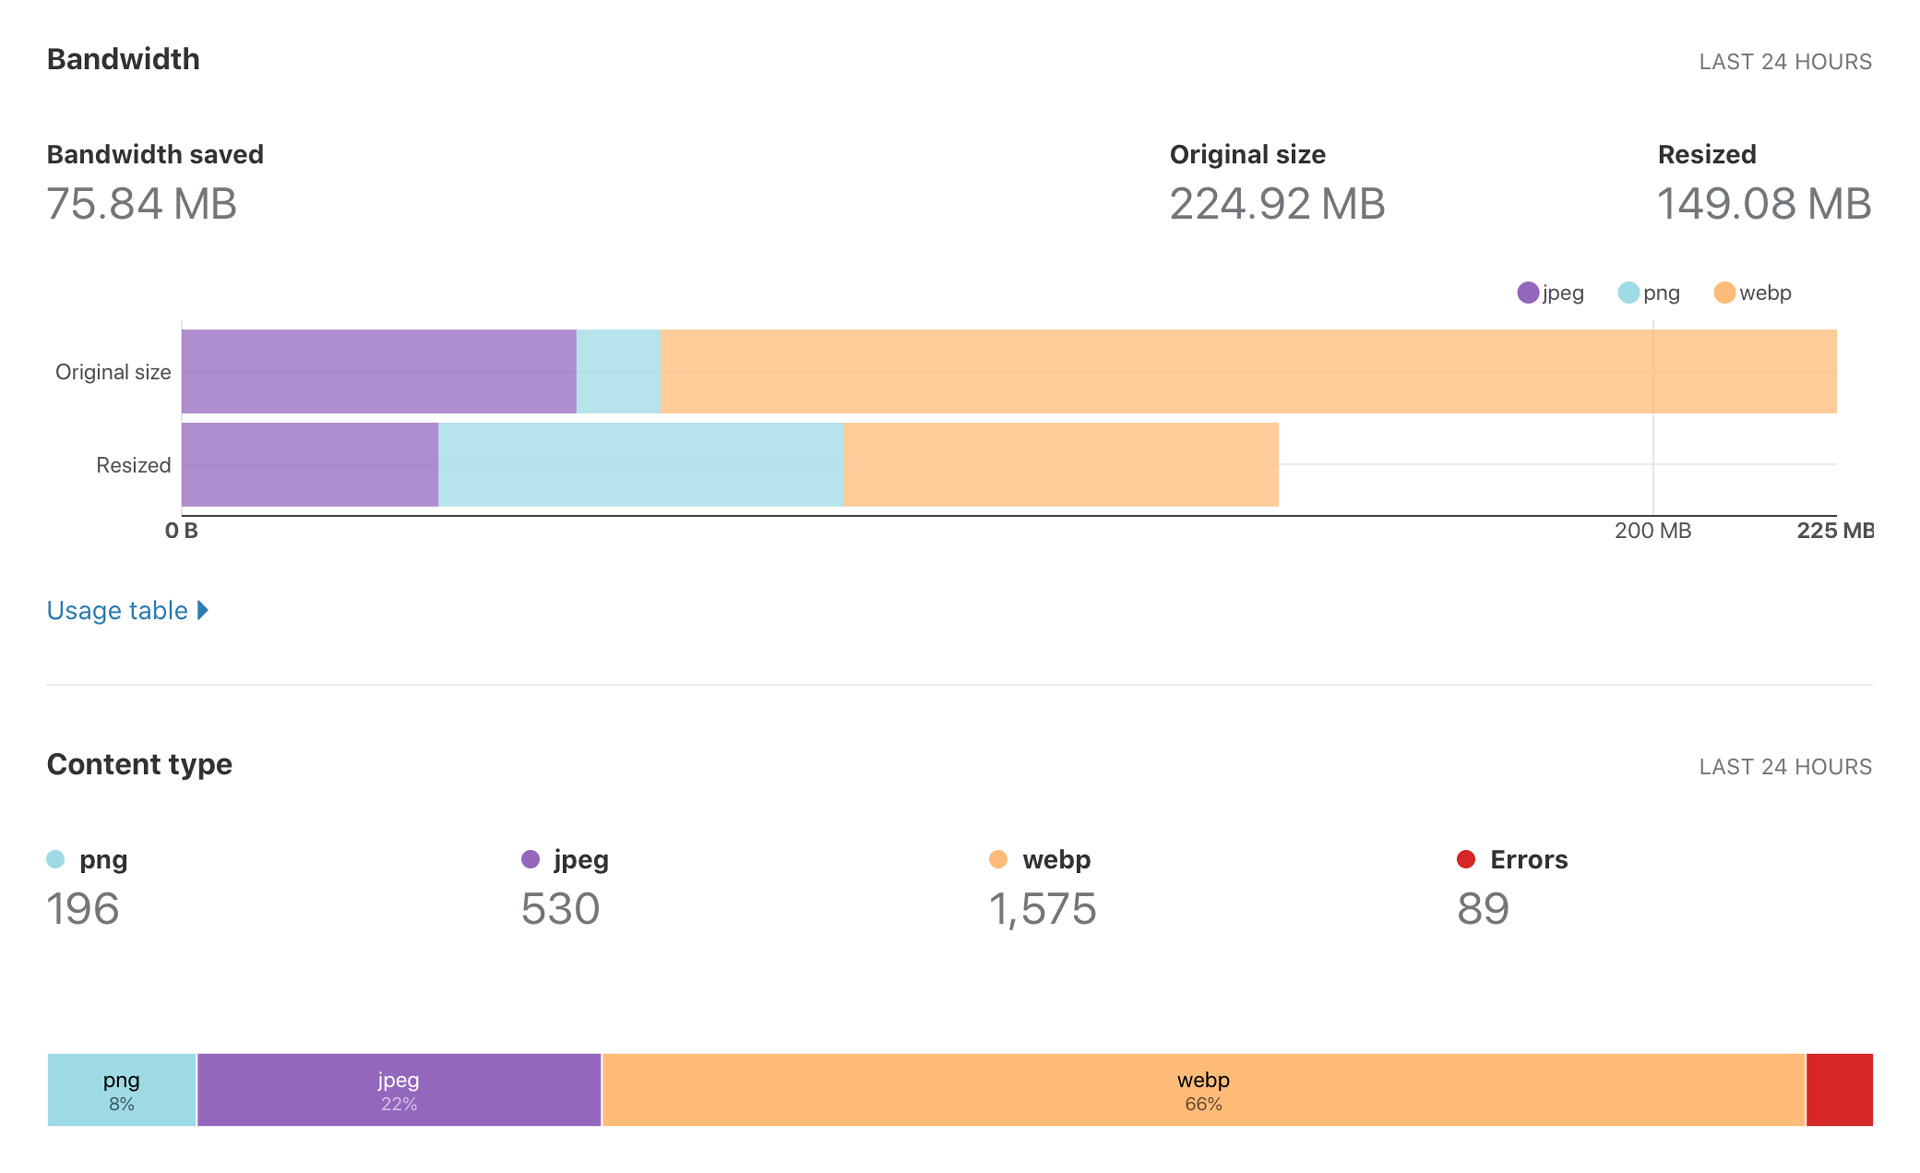 Image resizing analytics in the Cloudflare dashboard.